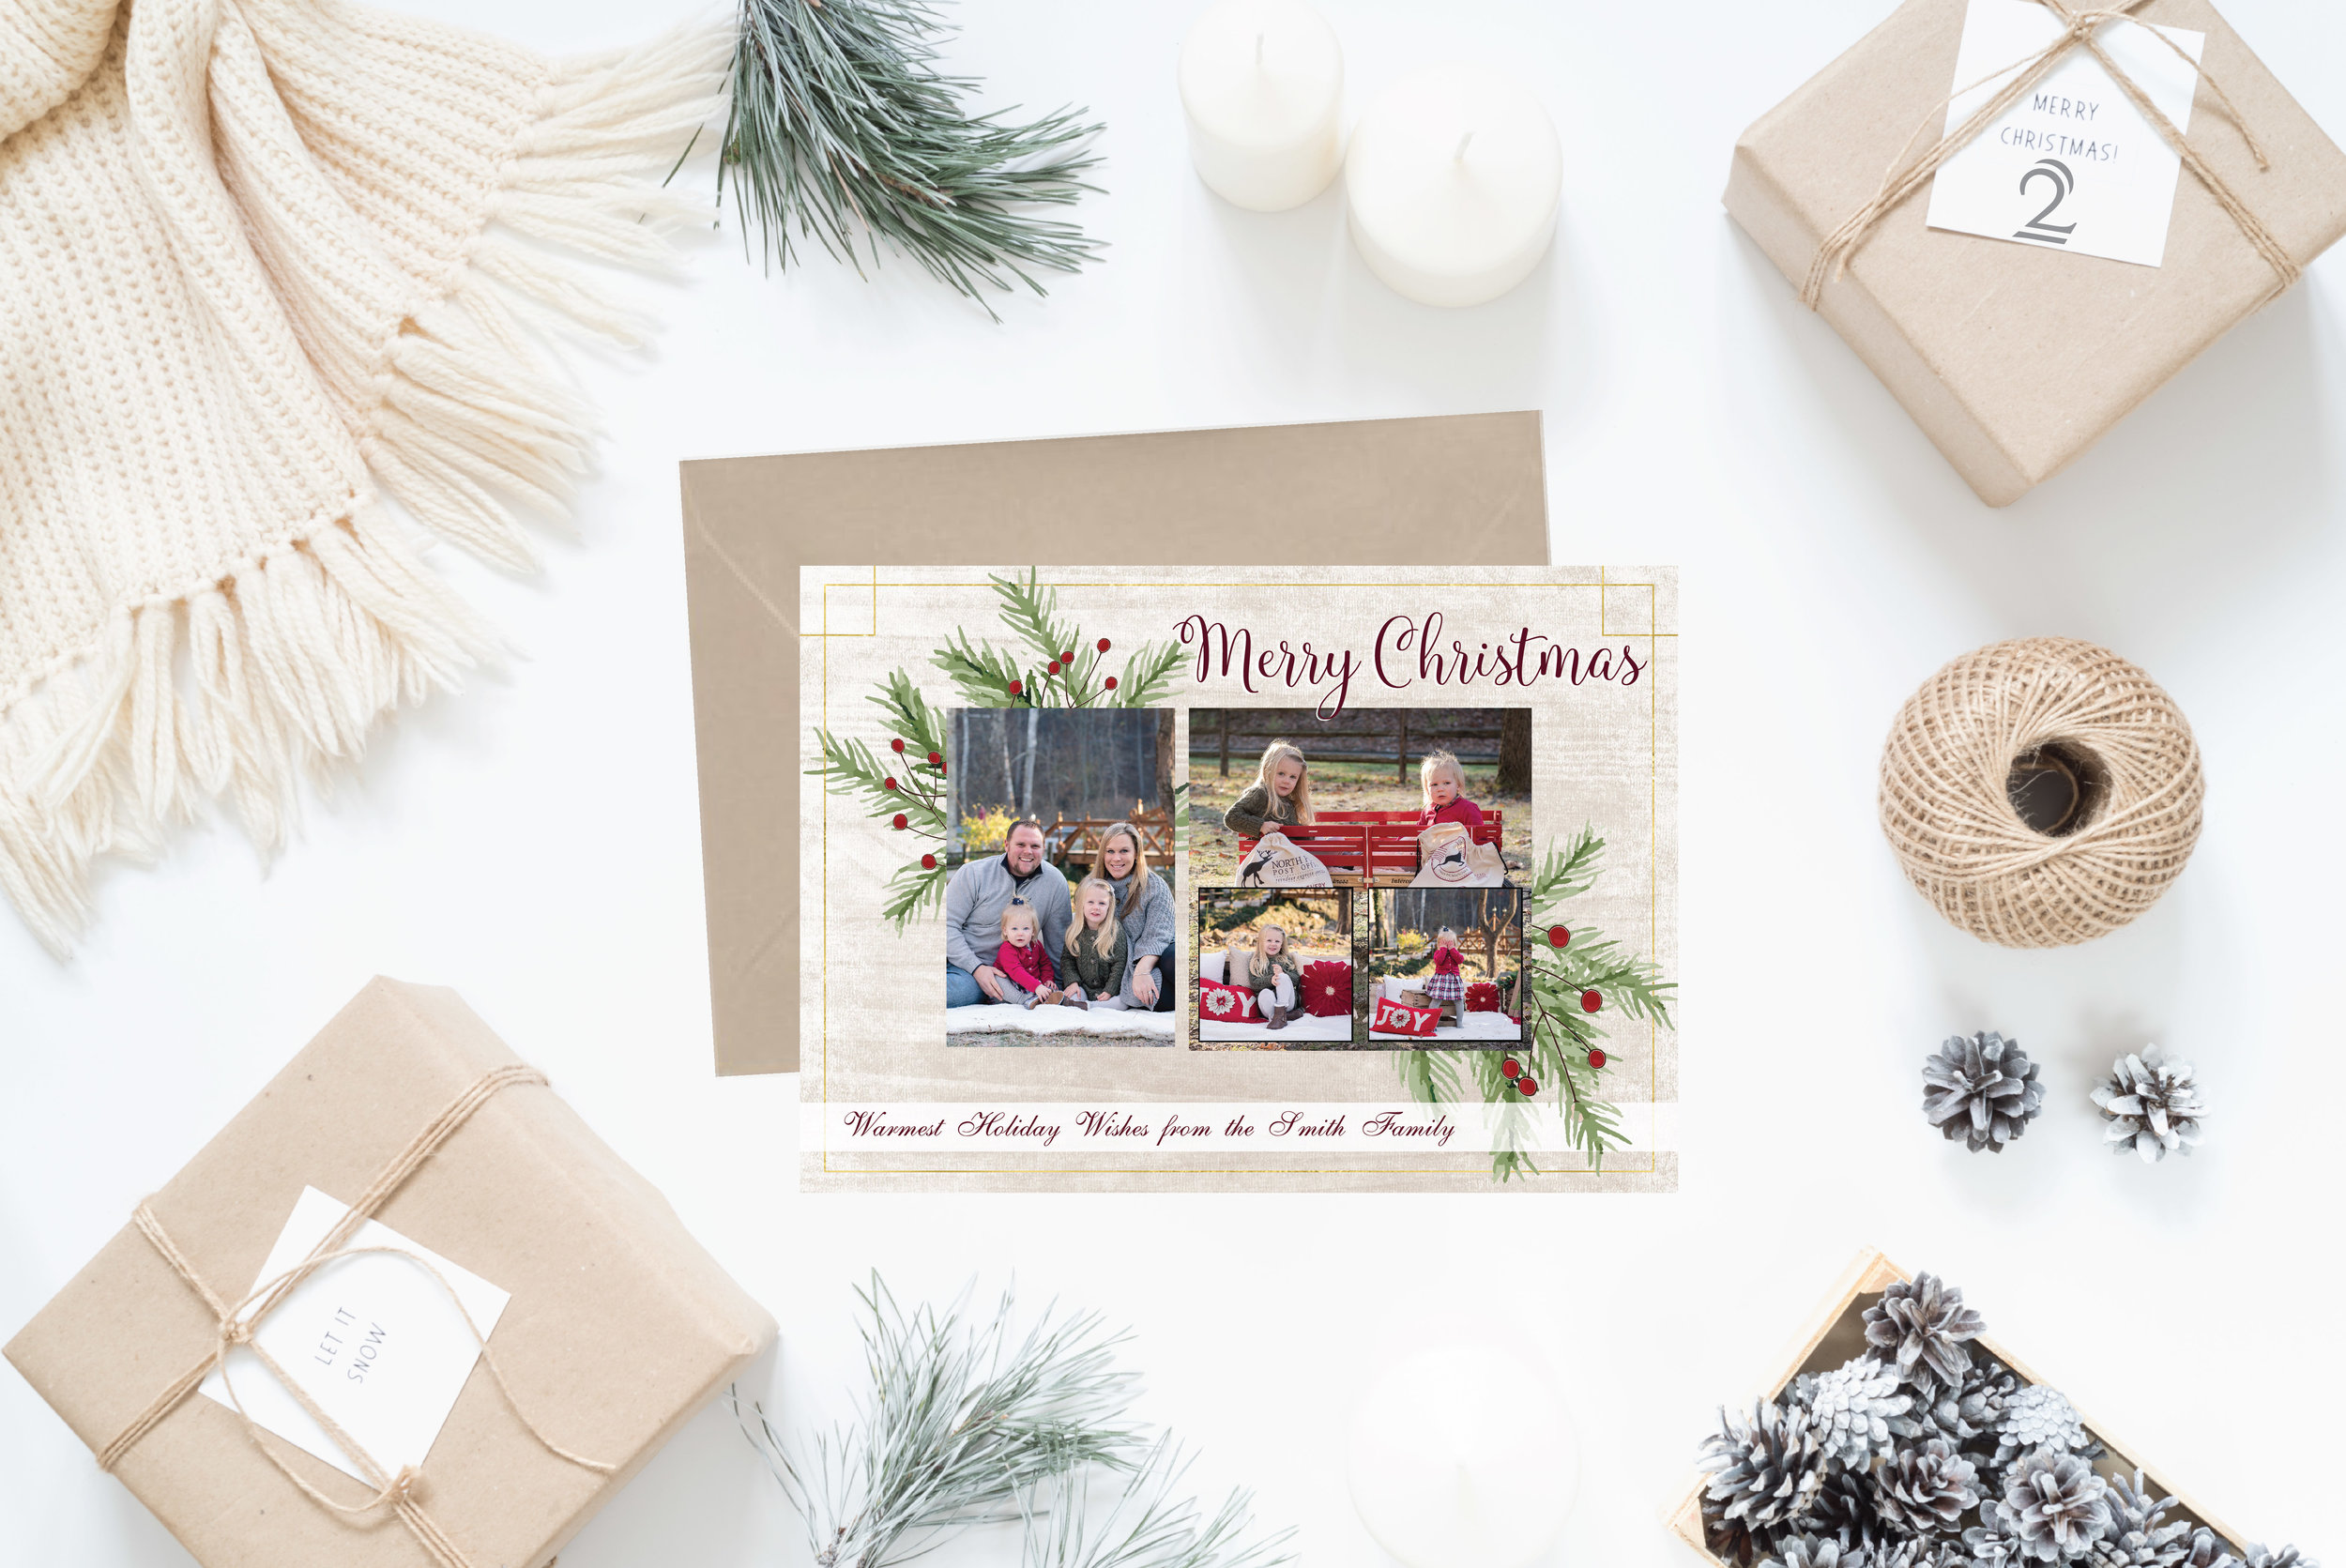 2- Christmas Cards Holiday Cards 2017 JesSmith Designs_Pine Merry Christmas.jpg